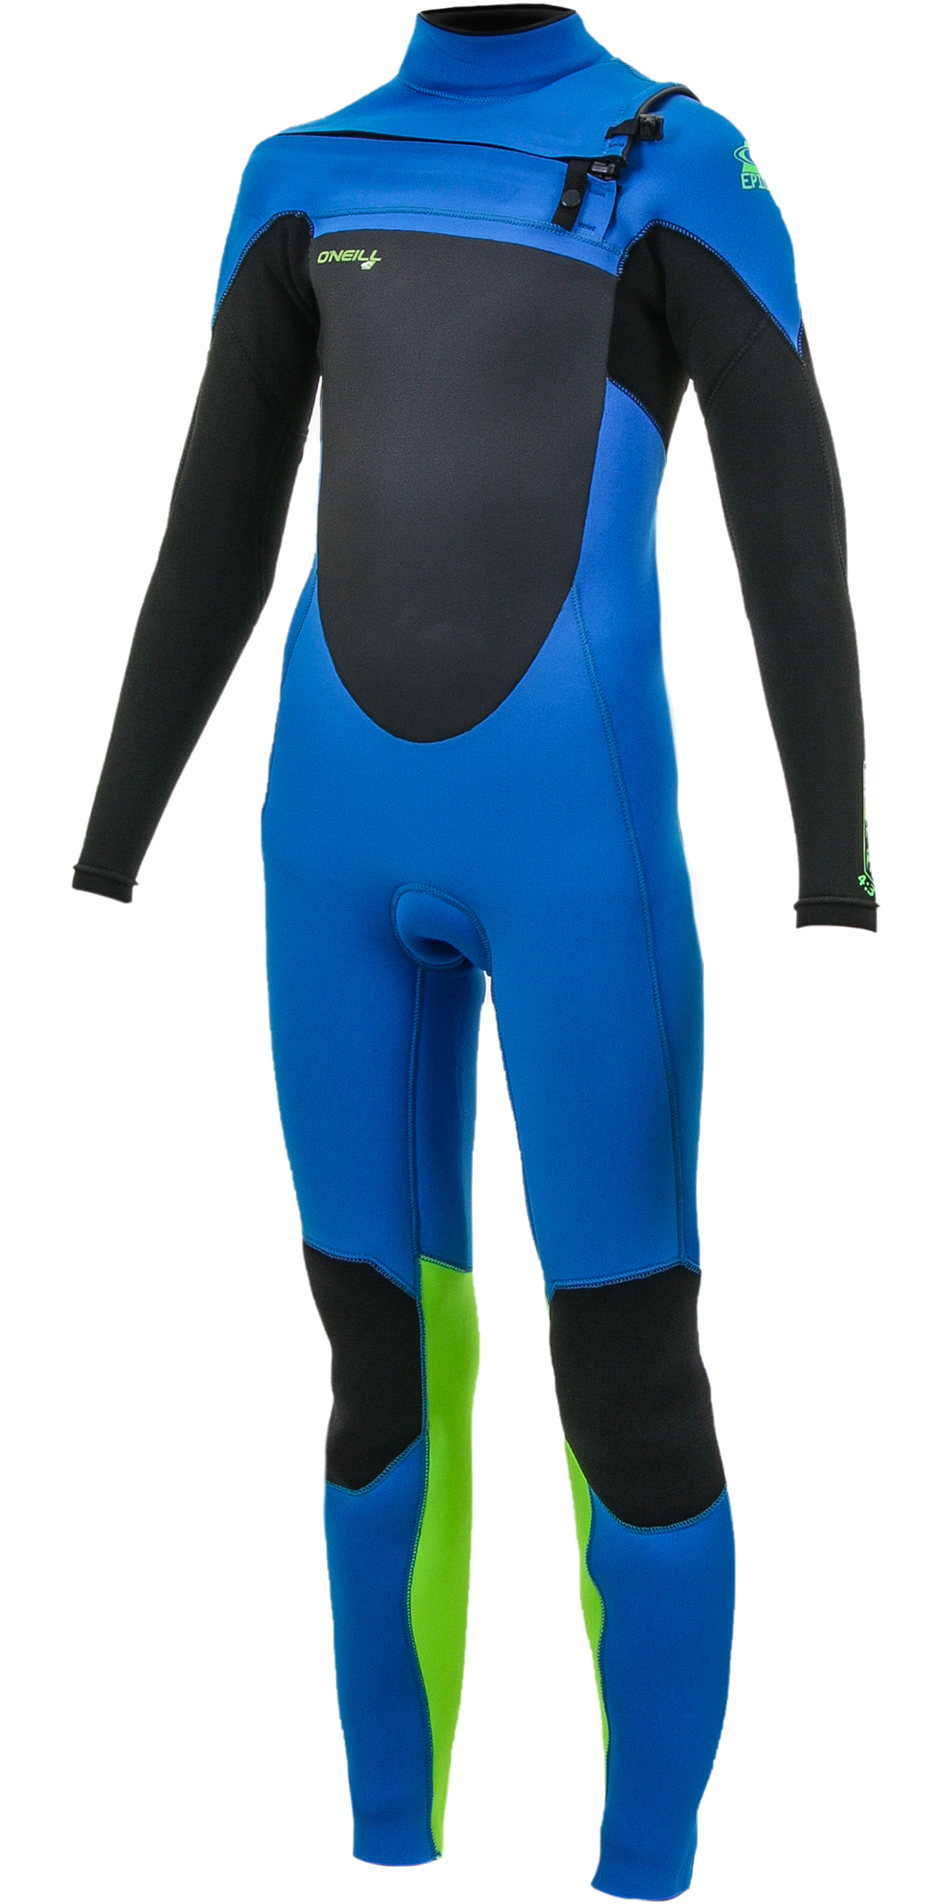 2020 O'Neill Youth Epic 5/4mm Chest Zip GBS Wetsuit Ocean / Black / Dayglo 5372